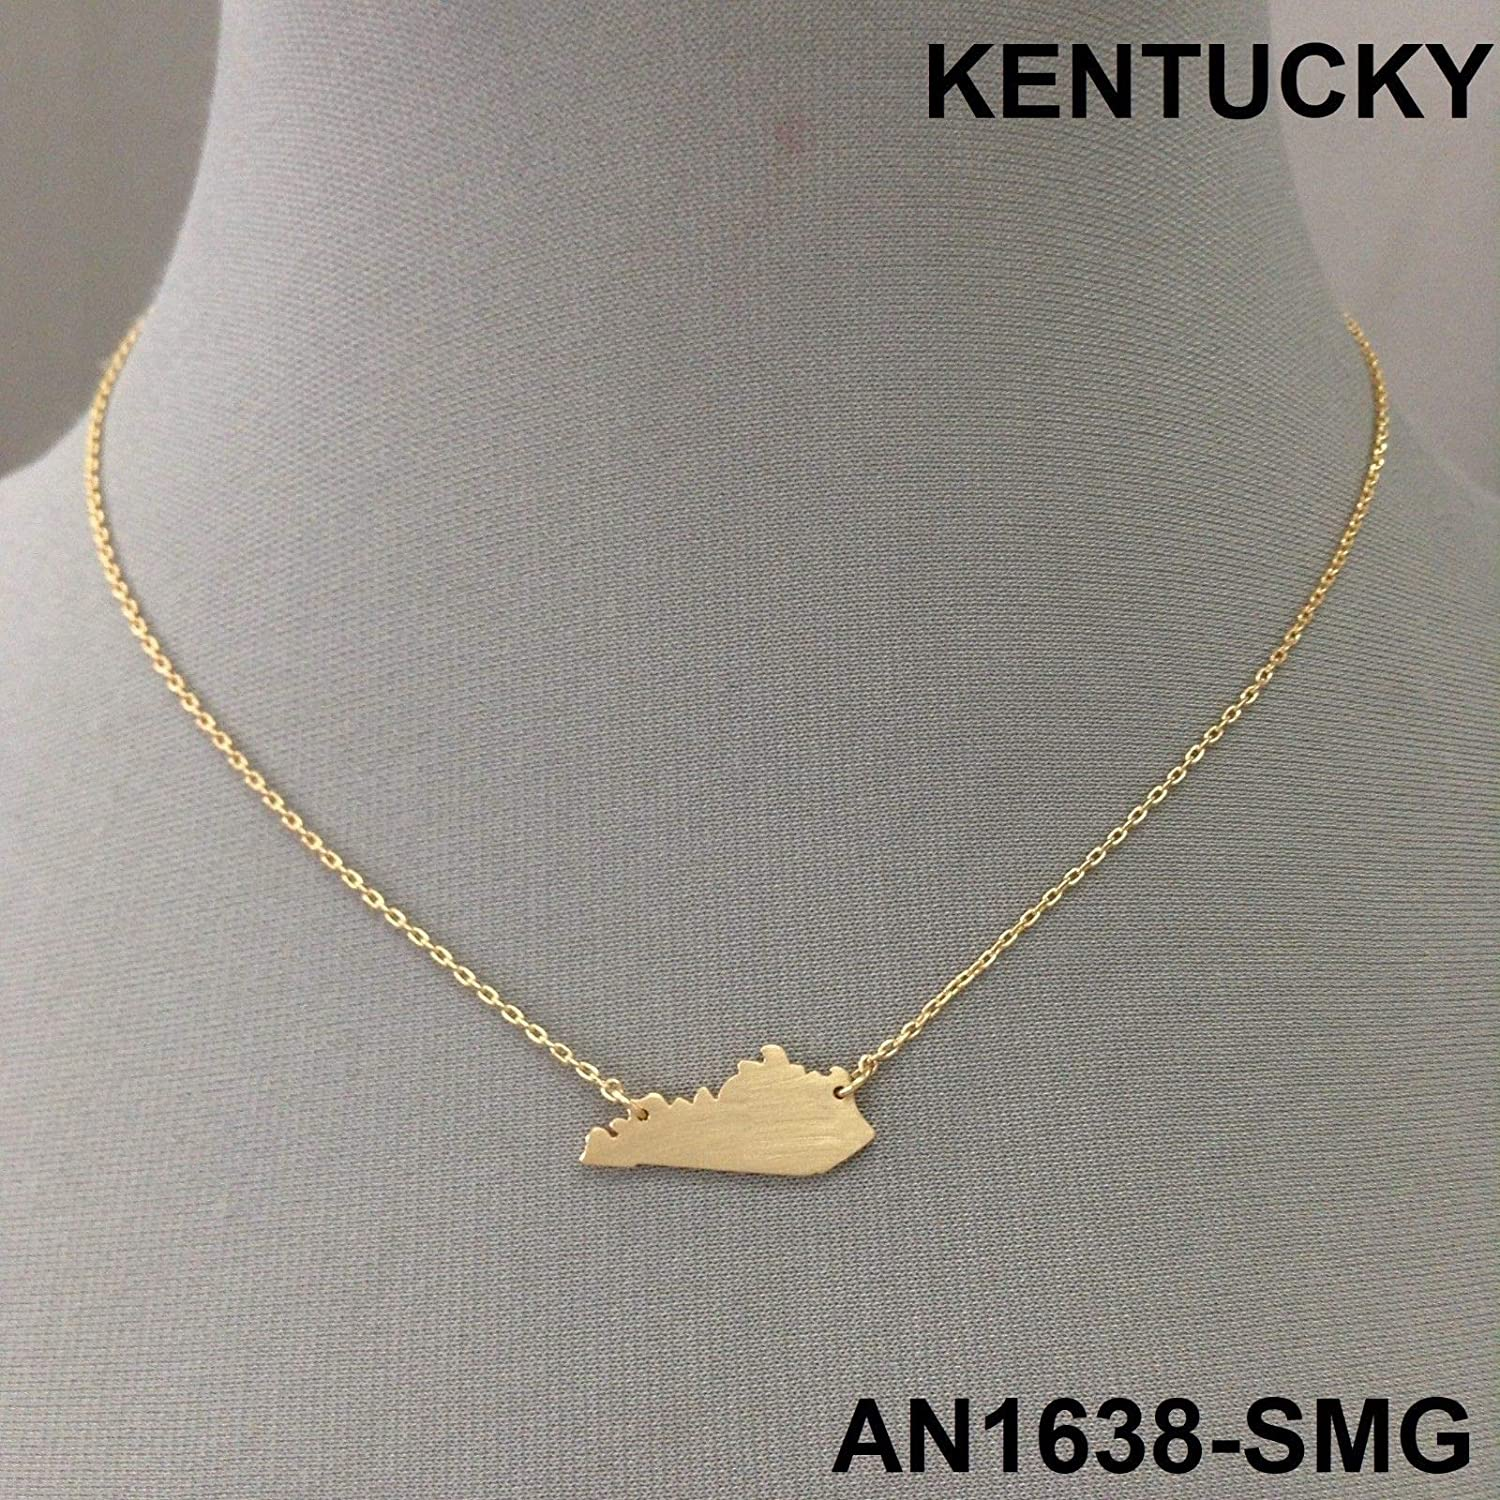 Simple Unique Gold Finish Kentucky State Shape Charm Design Dainty Necklace LL-5687